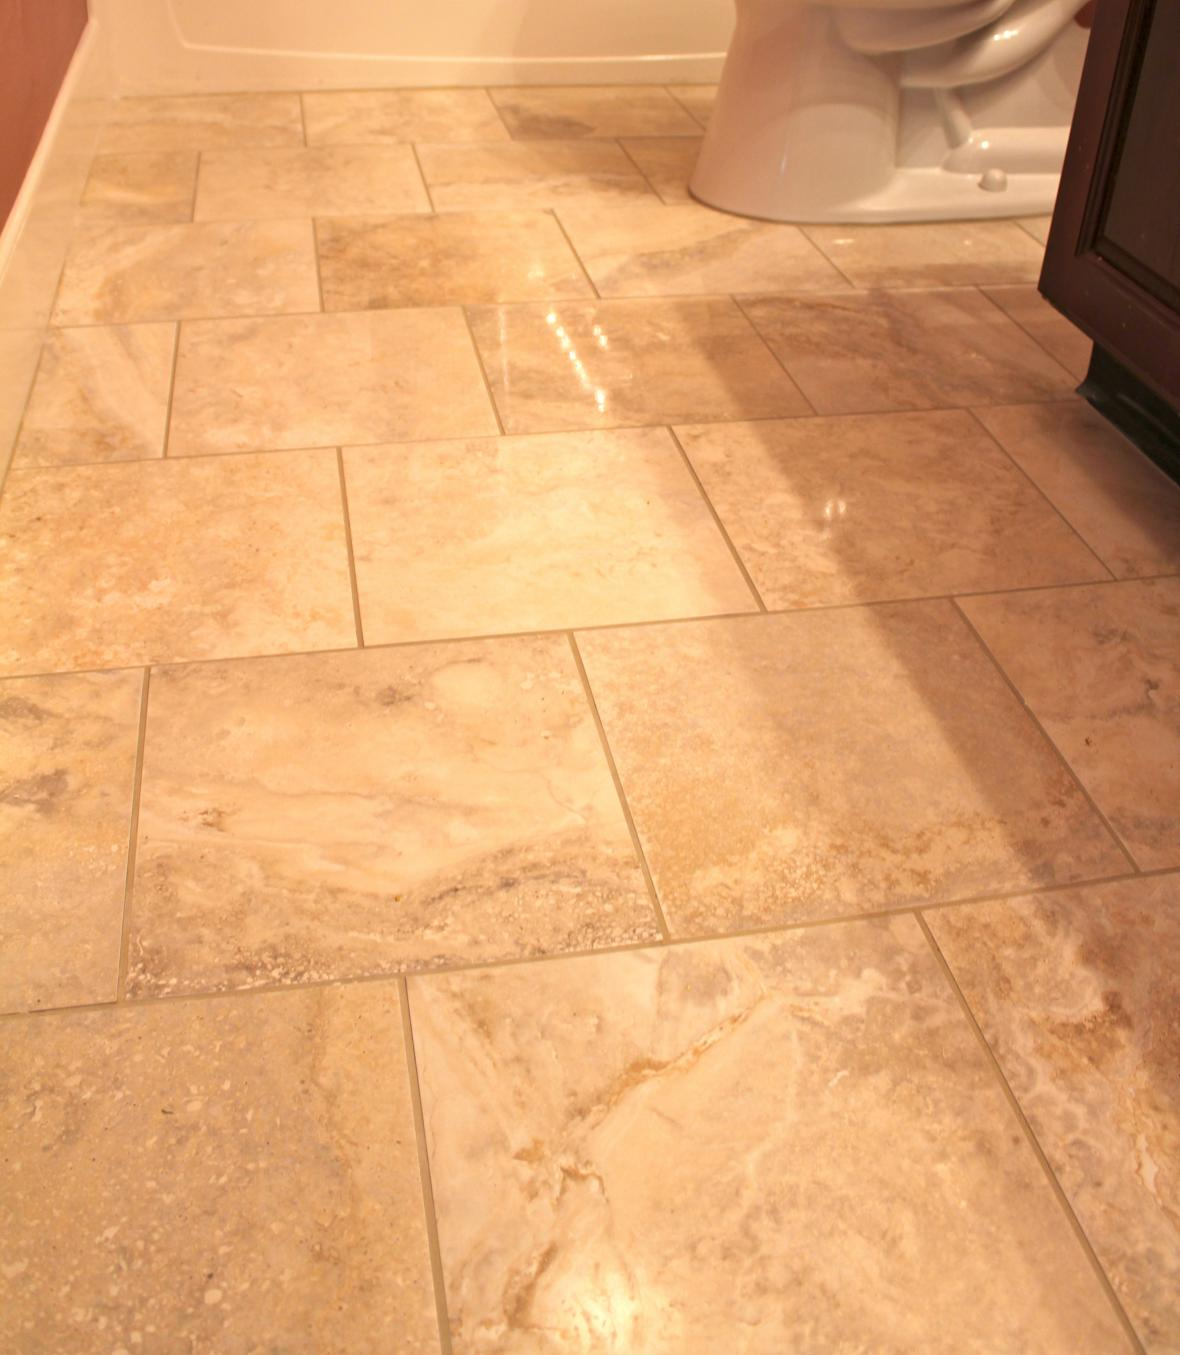 white marble and diagonal floor tile pattern from the slo bathroom - Tile Designs For Bathroom Floors